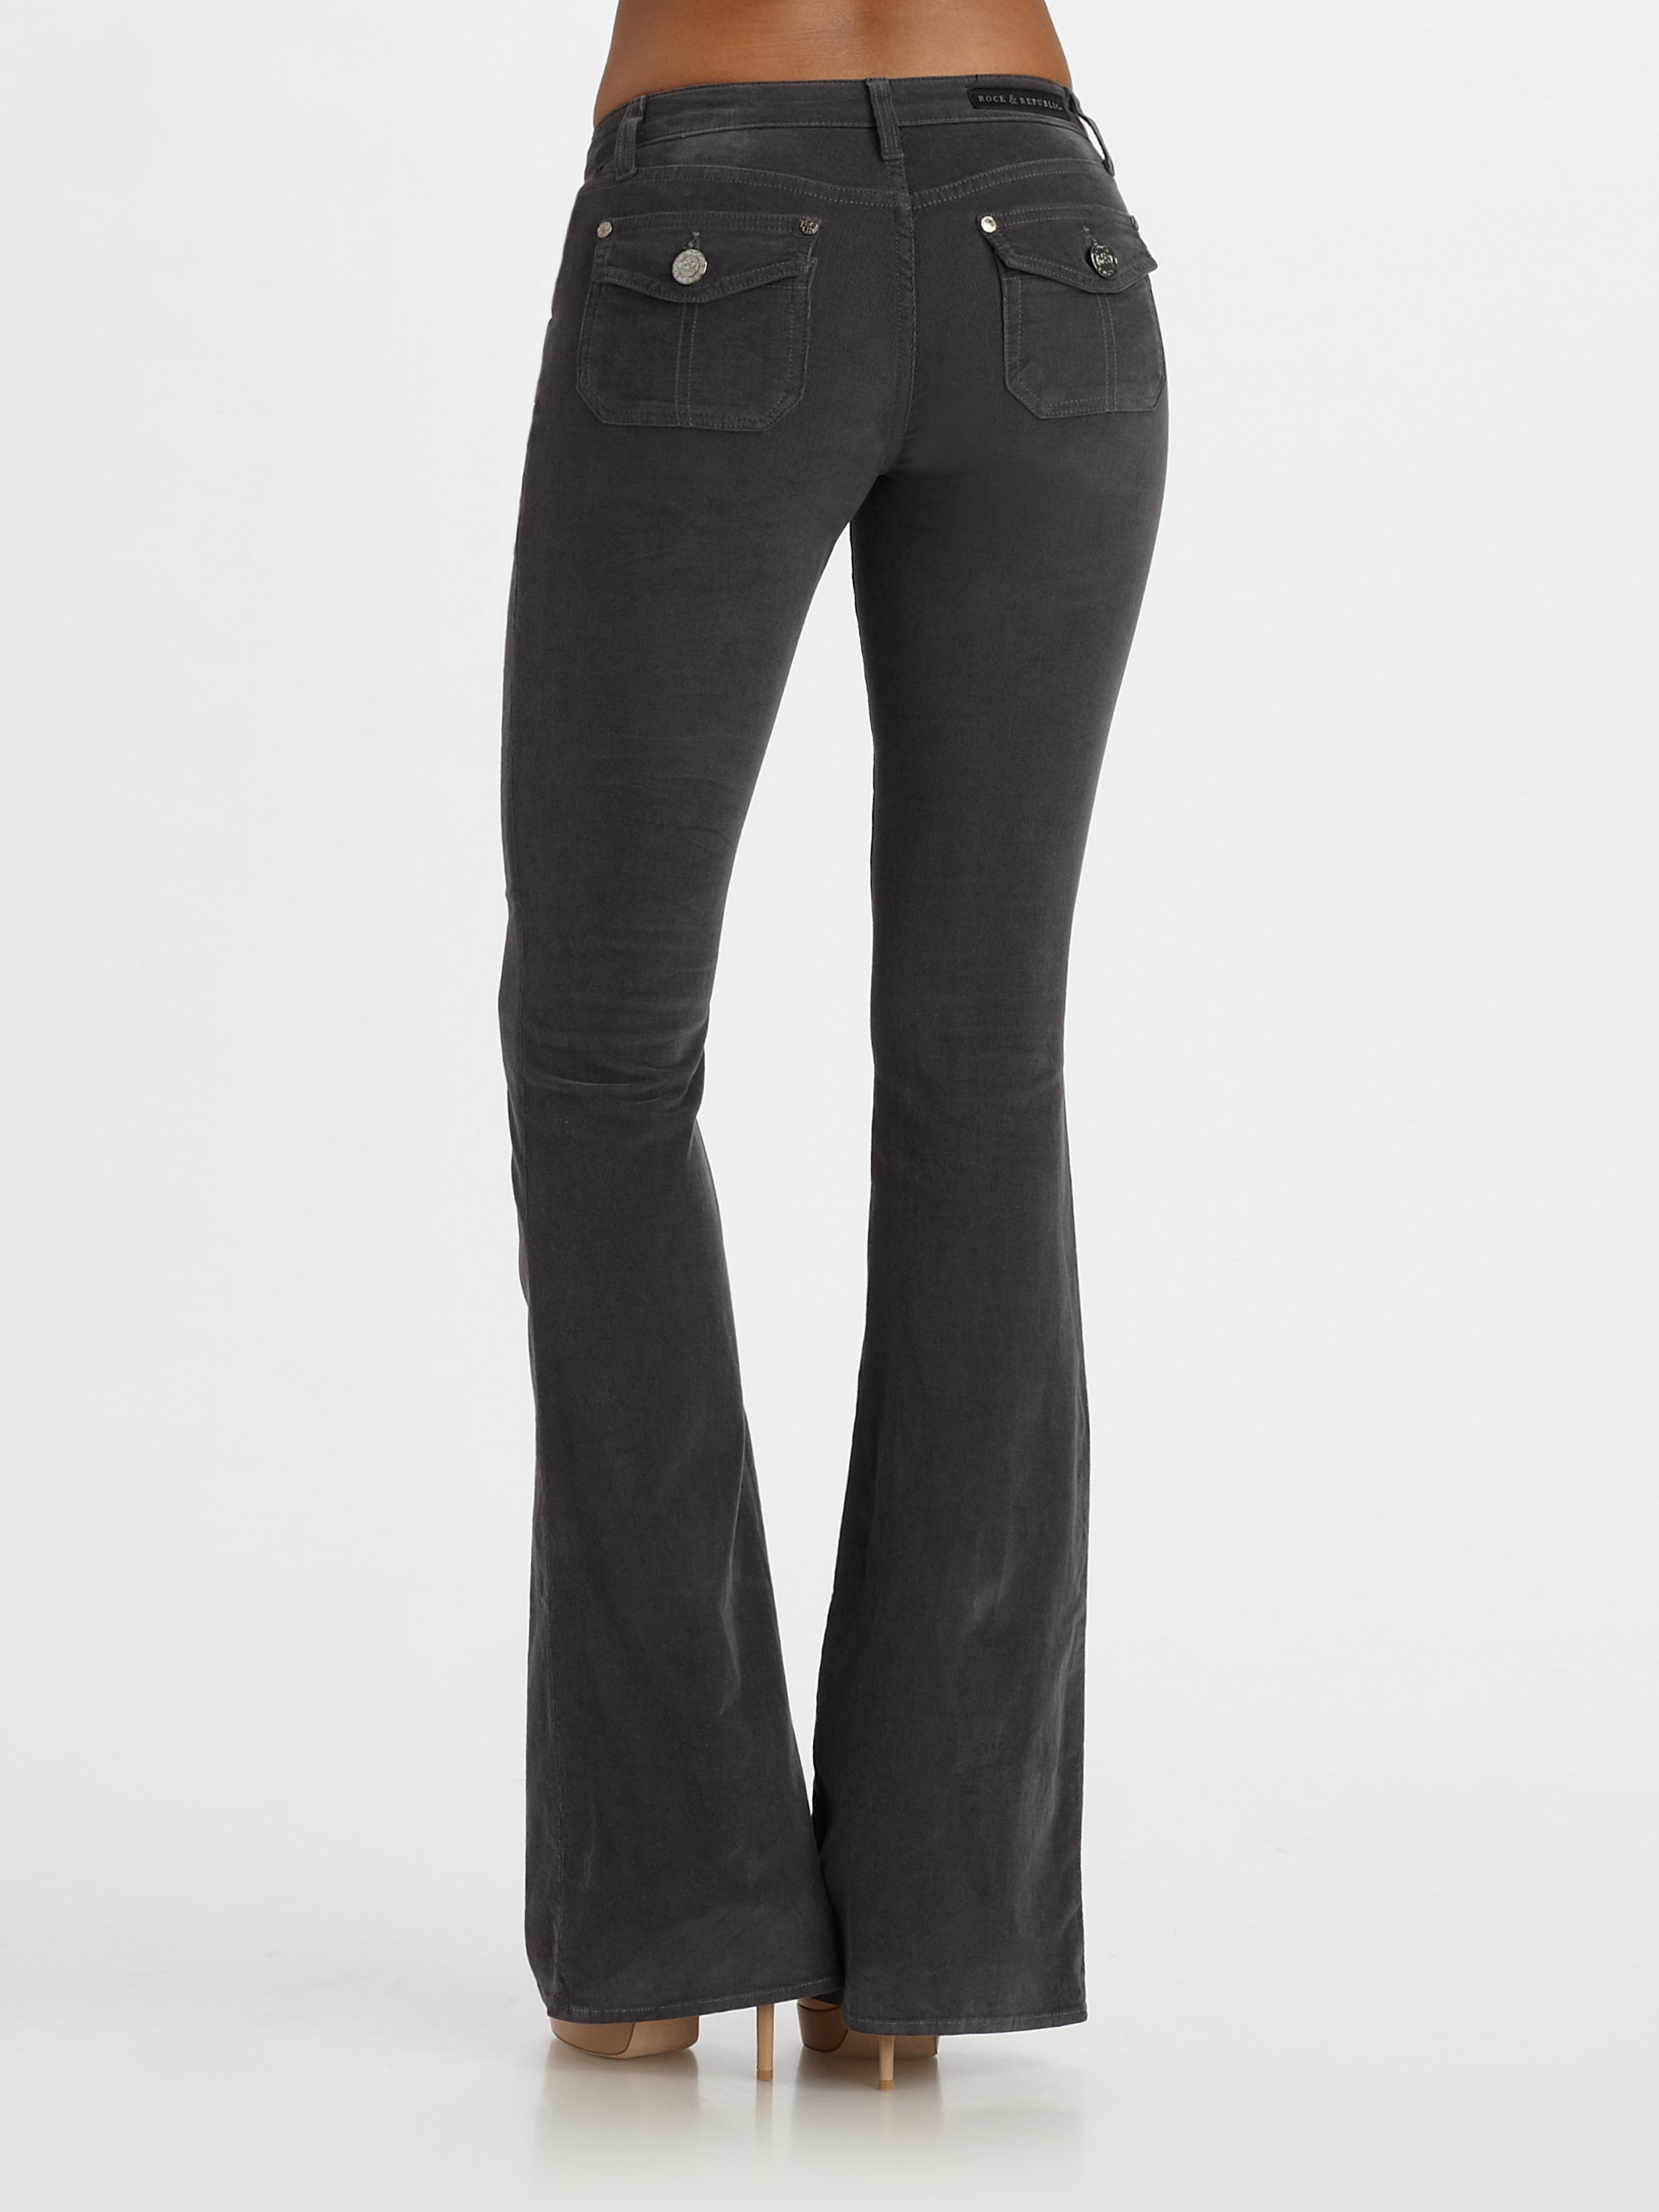 Womens Grey Bootcut Jeans